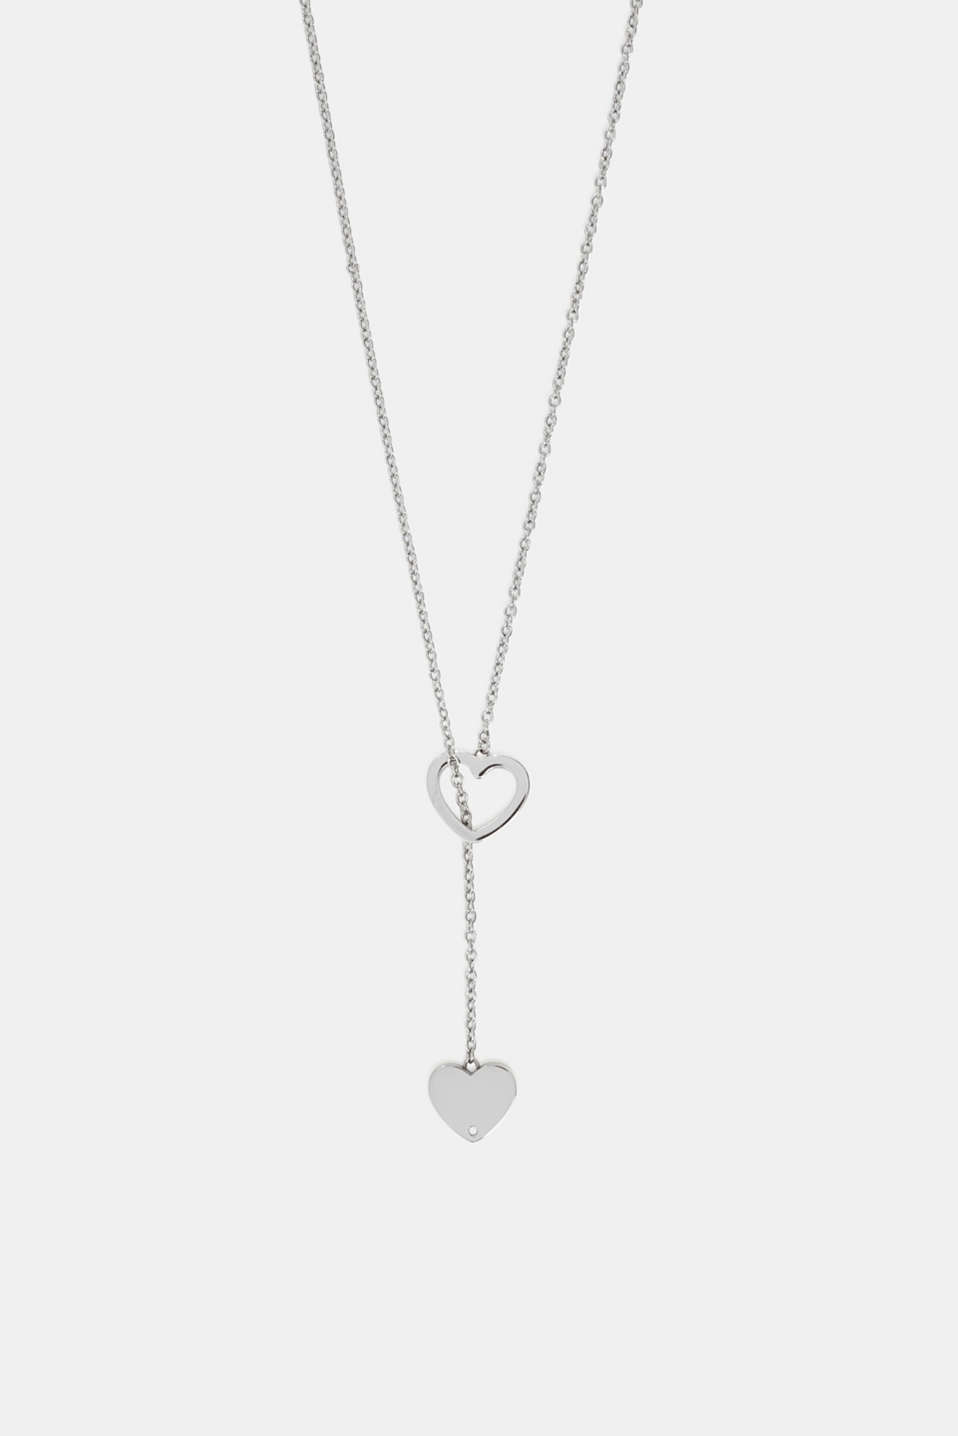 Esprit - Pendant necklace with heart charm, stainless steel